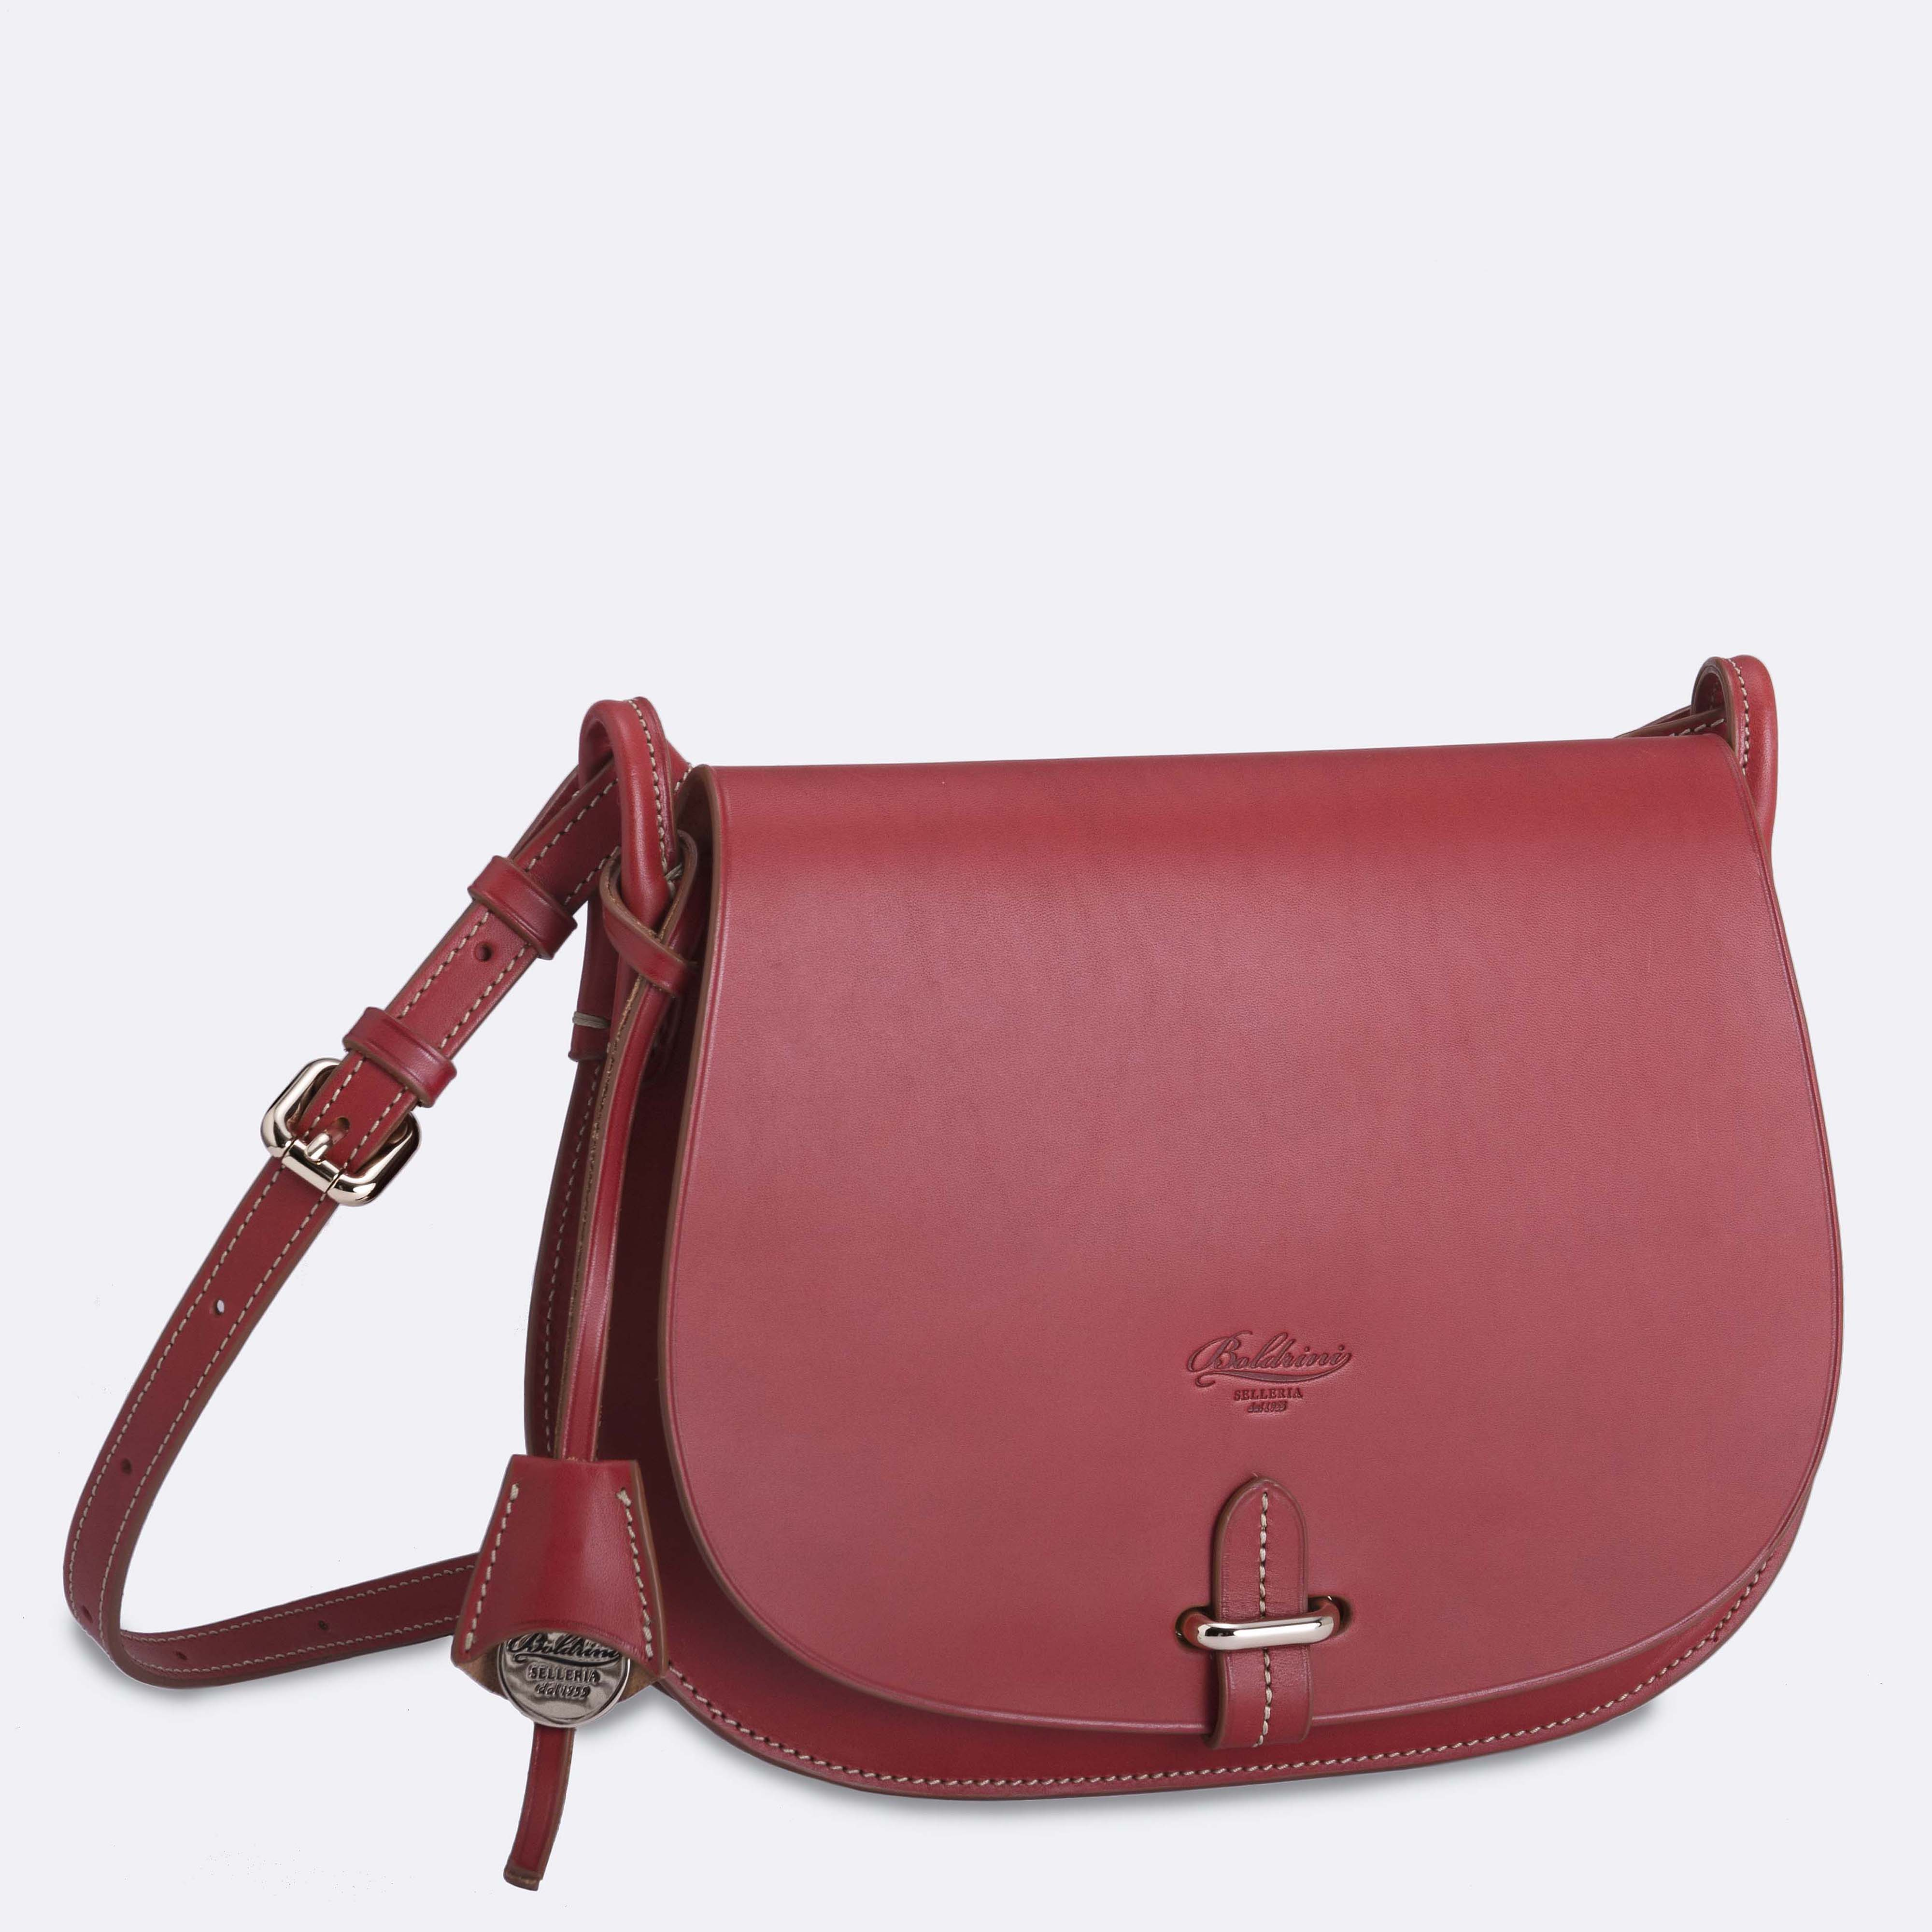 Sabrina saddle bag